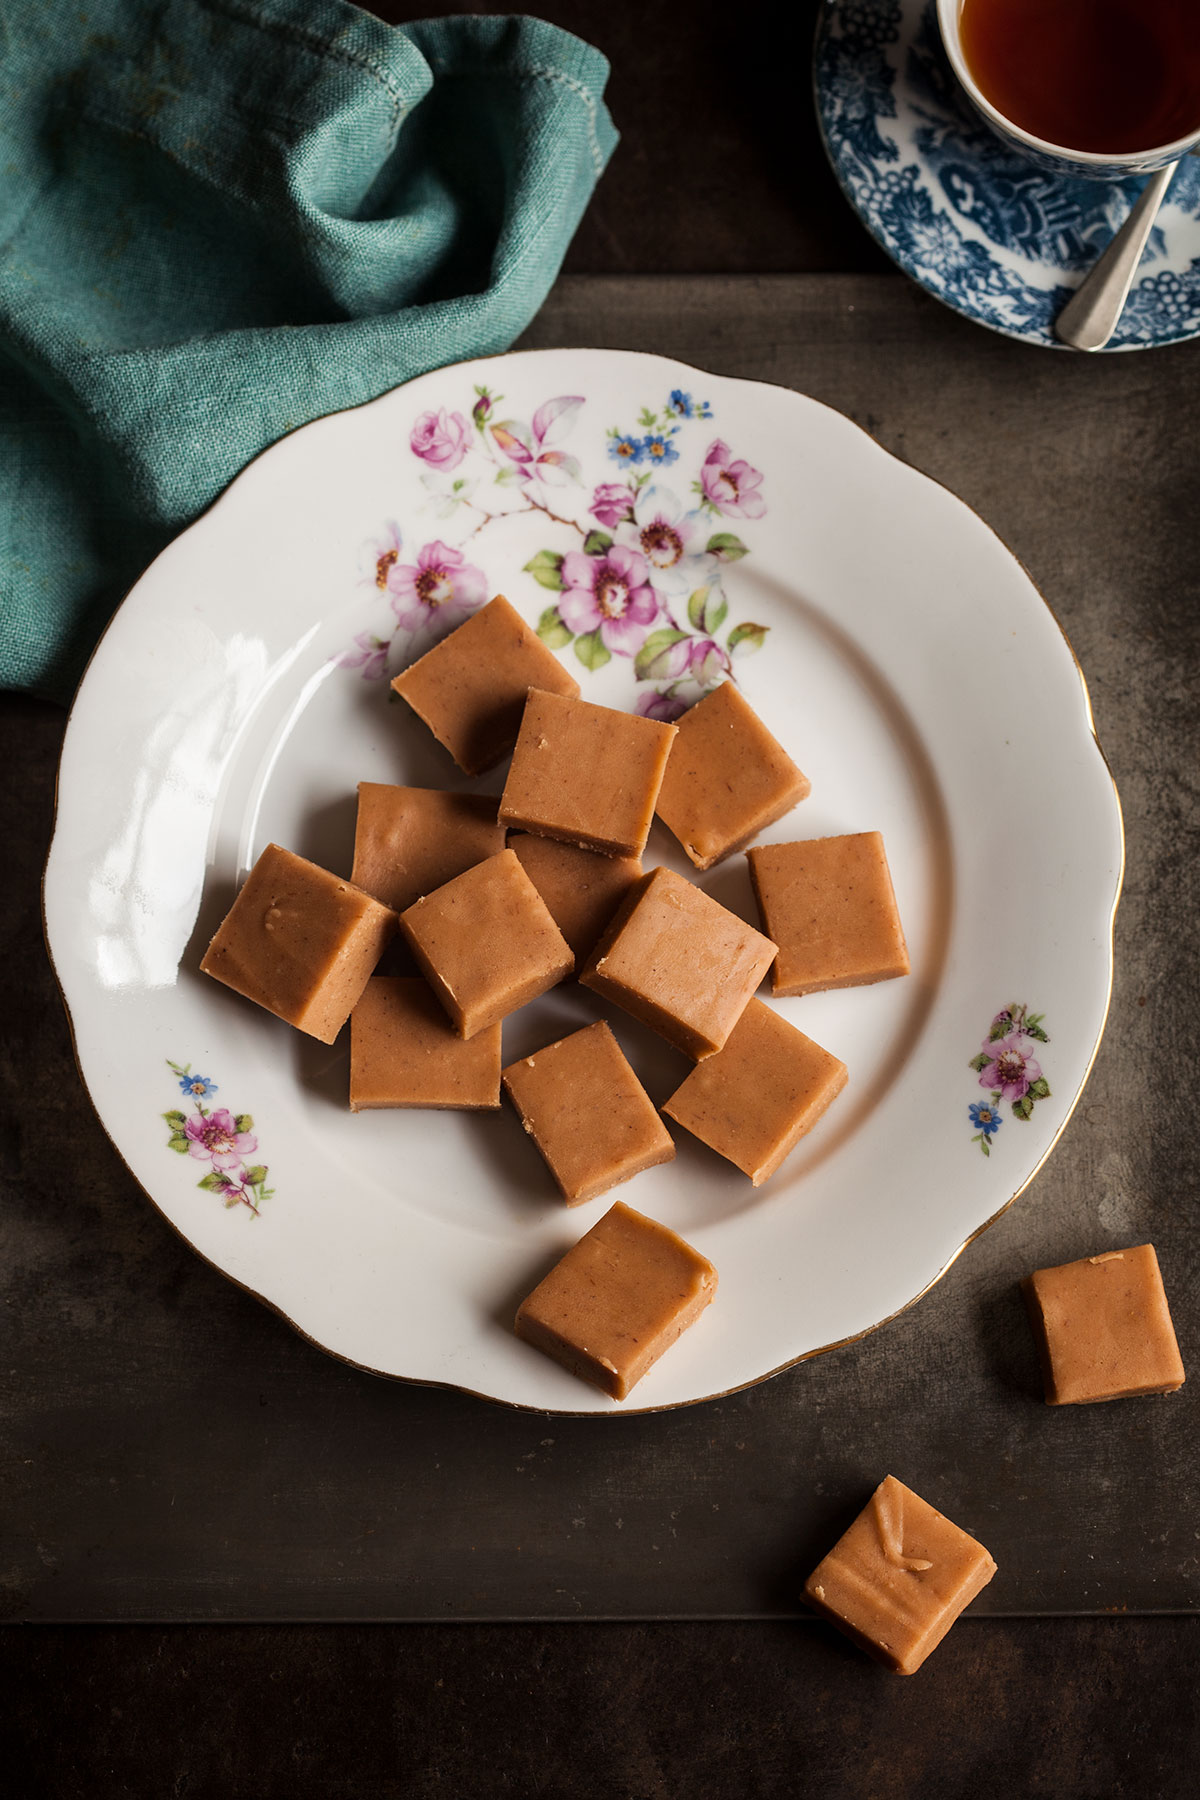 White chocolate and green tea fudge recipes